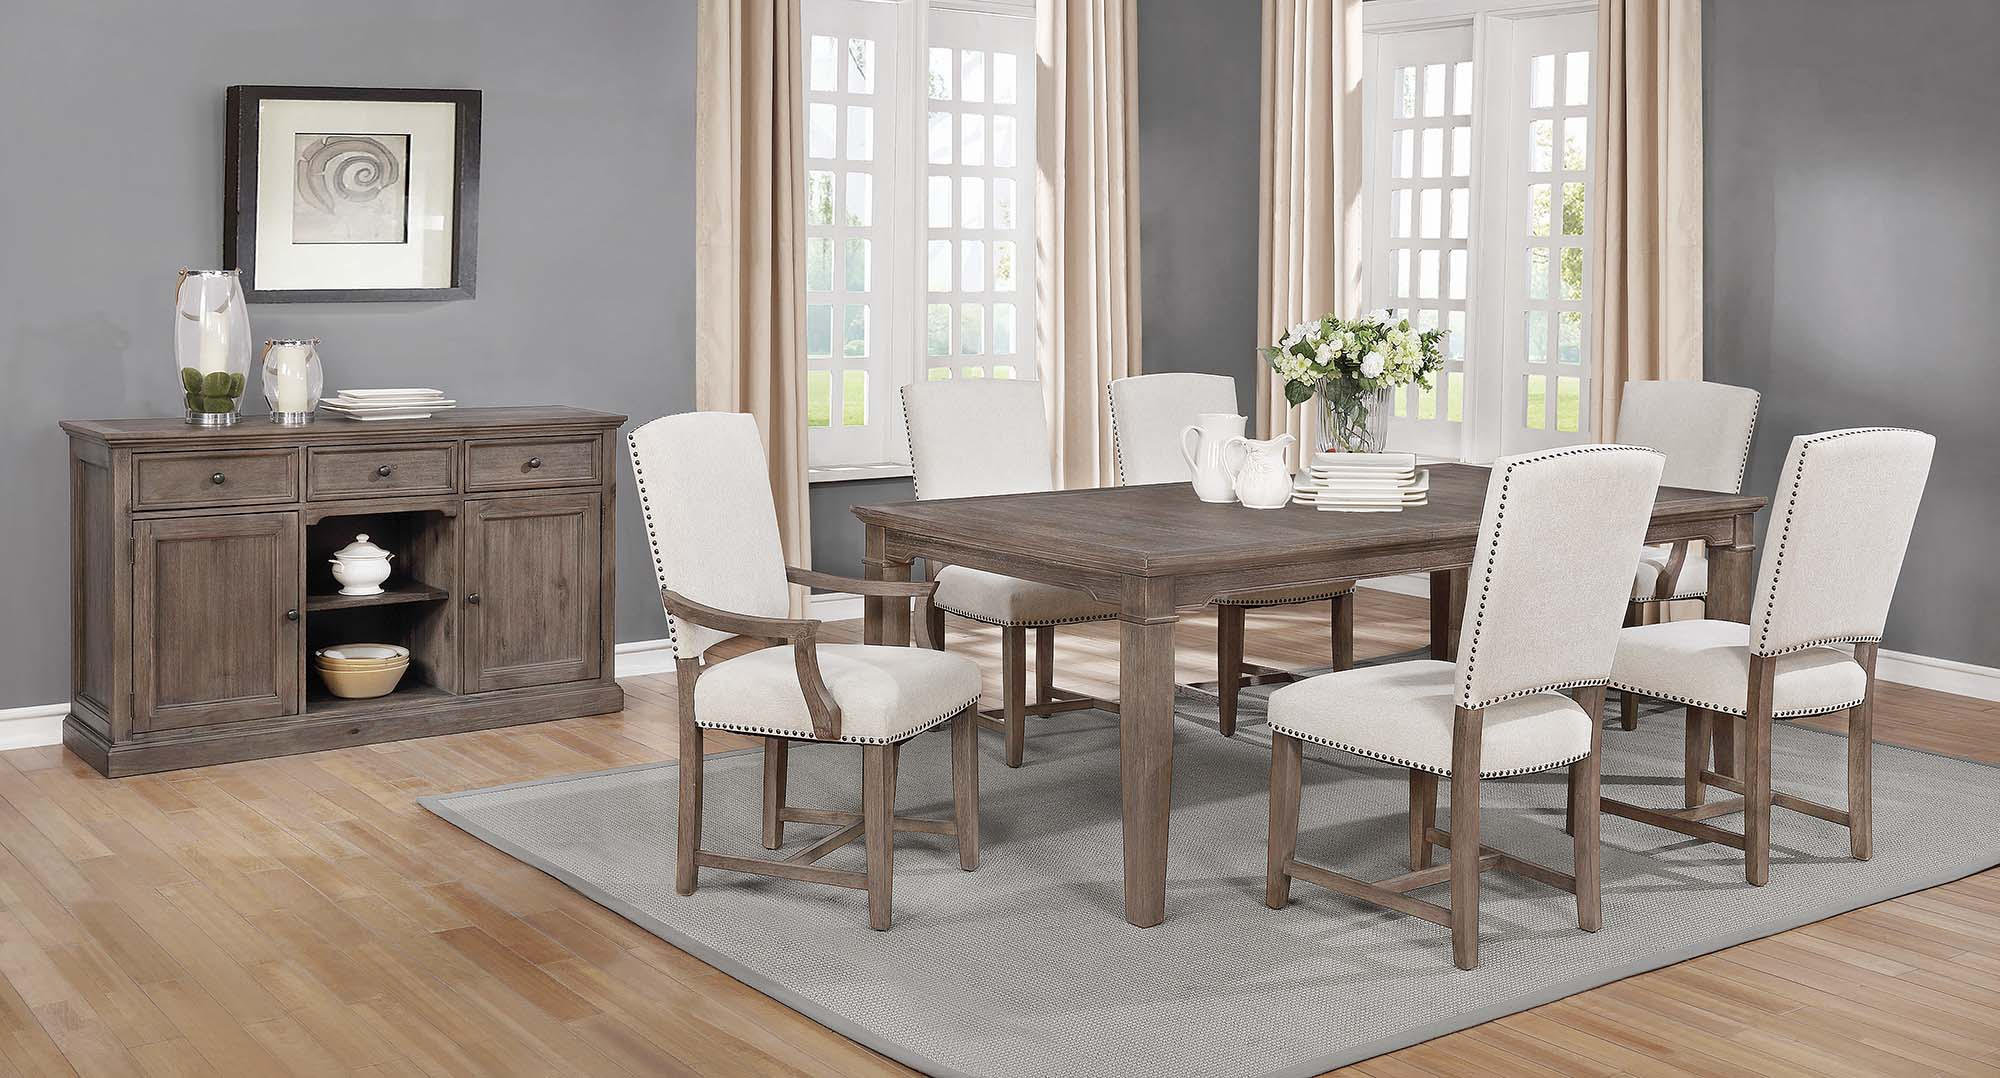 Fashionable Penelope 3 Piece Counter Height Wood Dining Sets Within Penelope 7 Piece Dining Set Island Khaki And Rice Grey (Gallery 18 of 20)